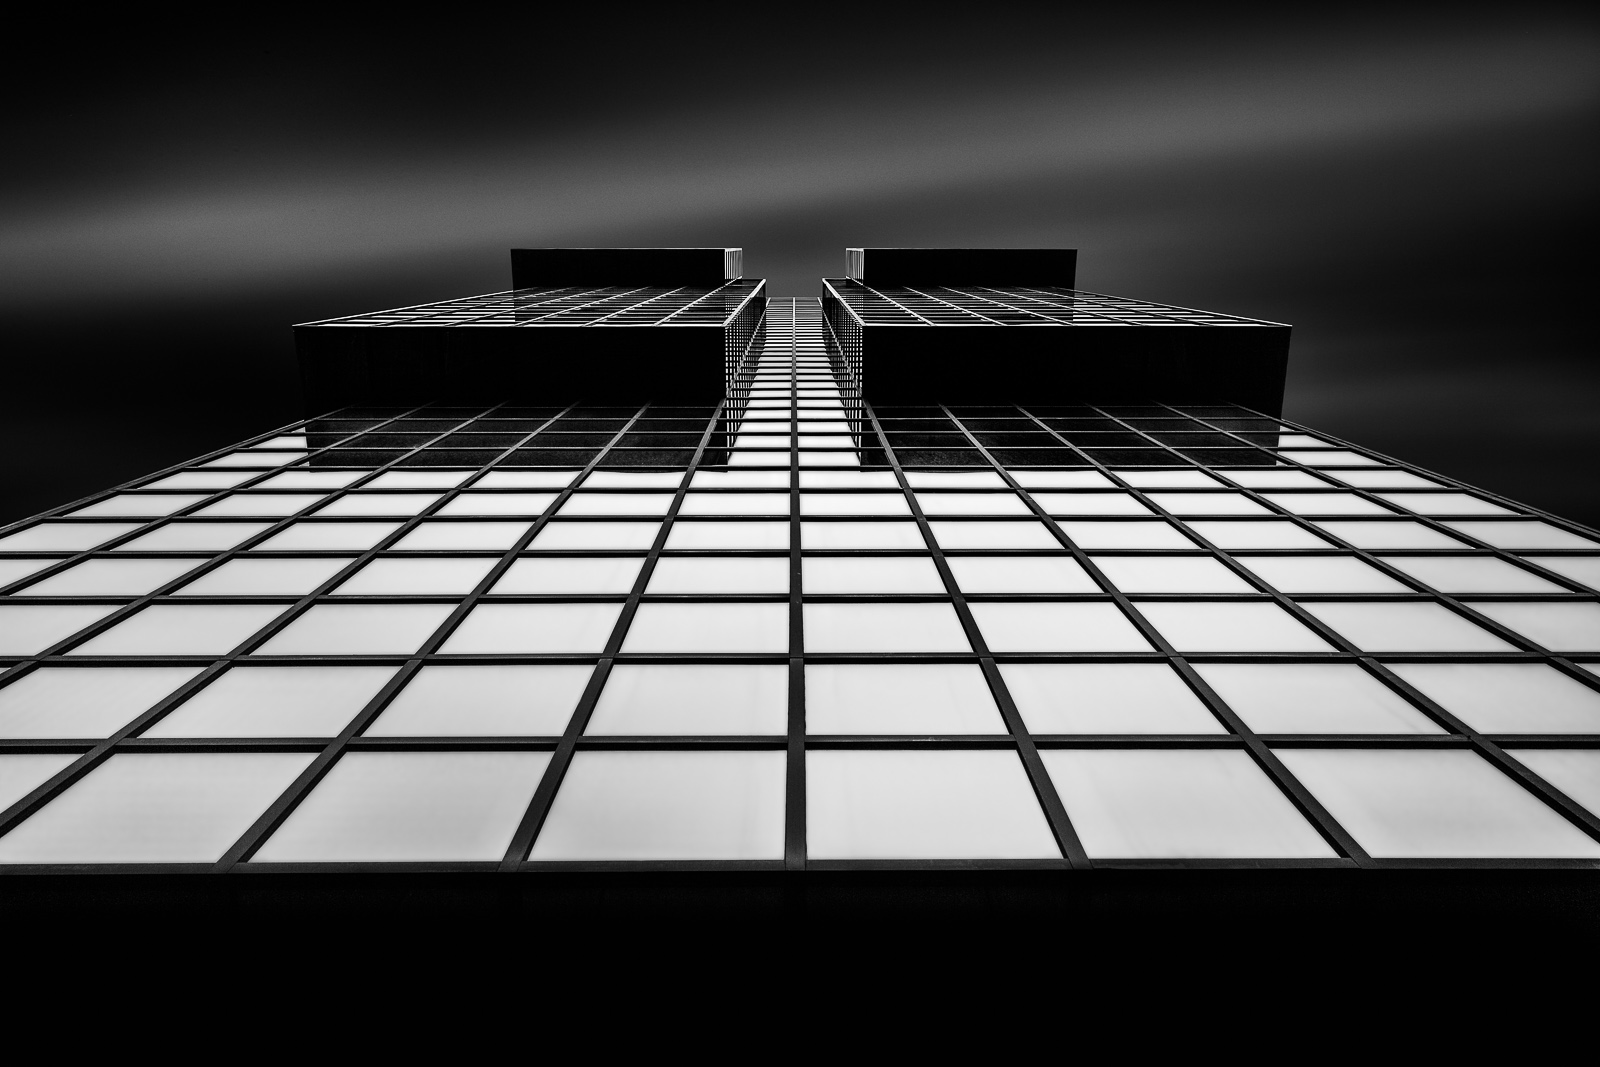 antonyz long exposure architecture black and white square windows modern office building